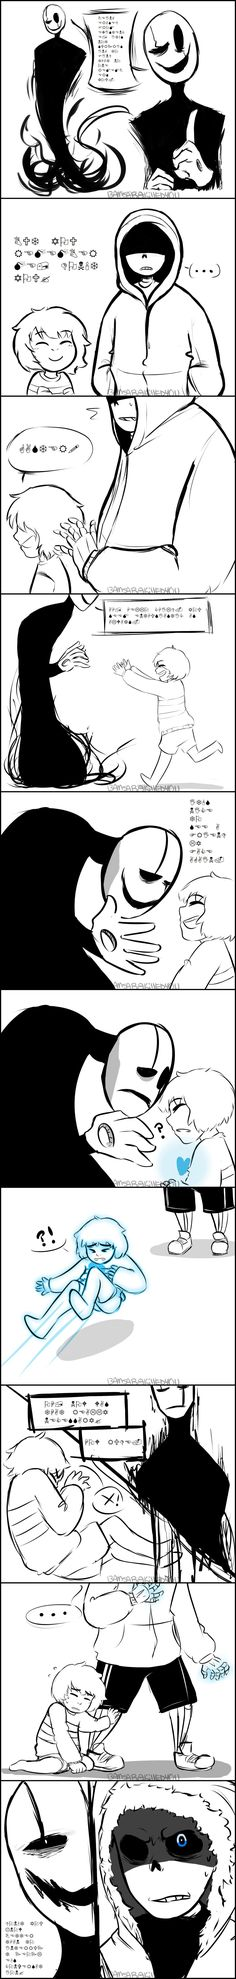 G: BEING ERASED FROM EXISTENCE, IT'S NOT SURPRISING  TO FIND THAT NO ONE REMEMBERS YOU.  G: BUT YOUR REMEMBER ME, DON'T YOU?  F:GASTER!  G: AH, HELLO CHILD. YOU SEEM ENTHUSIASTIC AS ALWAYS.  G: IT'S NICE TO SEE A FRIENDLY FACE AGAIN  G: OH, NOW WAS THAT REALLY NECESSARY?  HOW RUDE. G: DON'T YOU KNOW BETTER THAN TO INTERRUPT PEOPLE'S CONVERSATION?